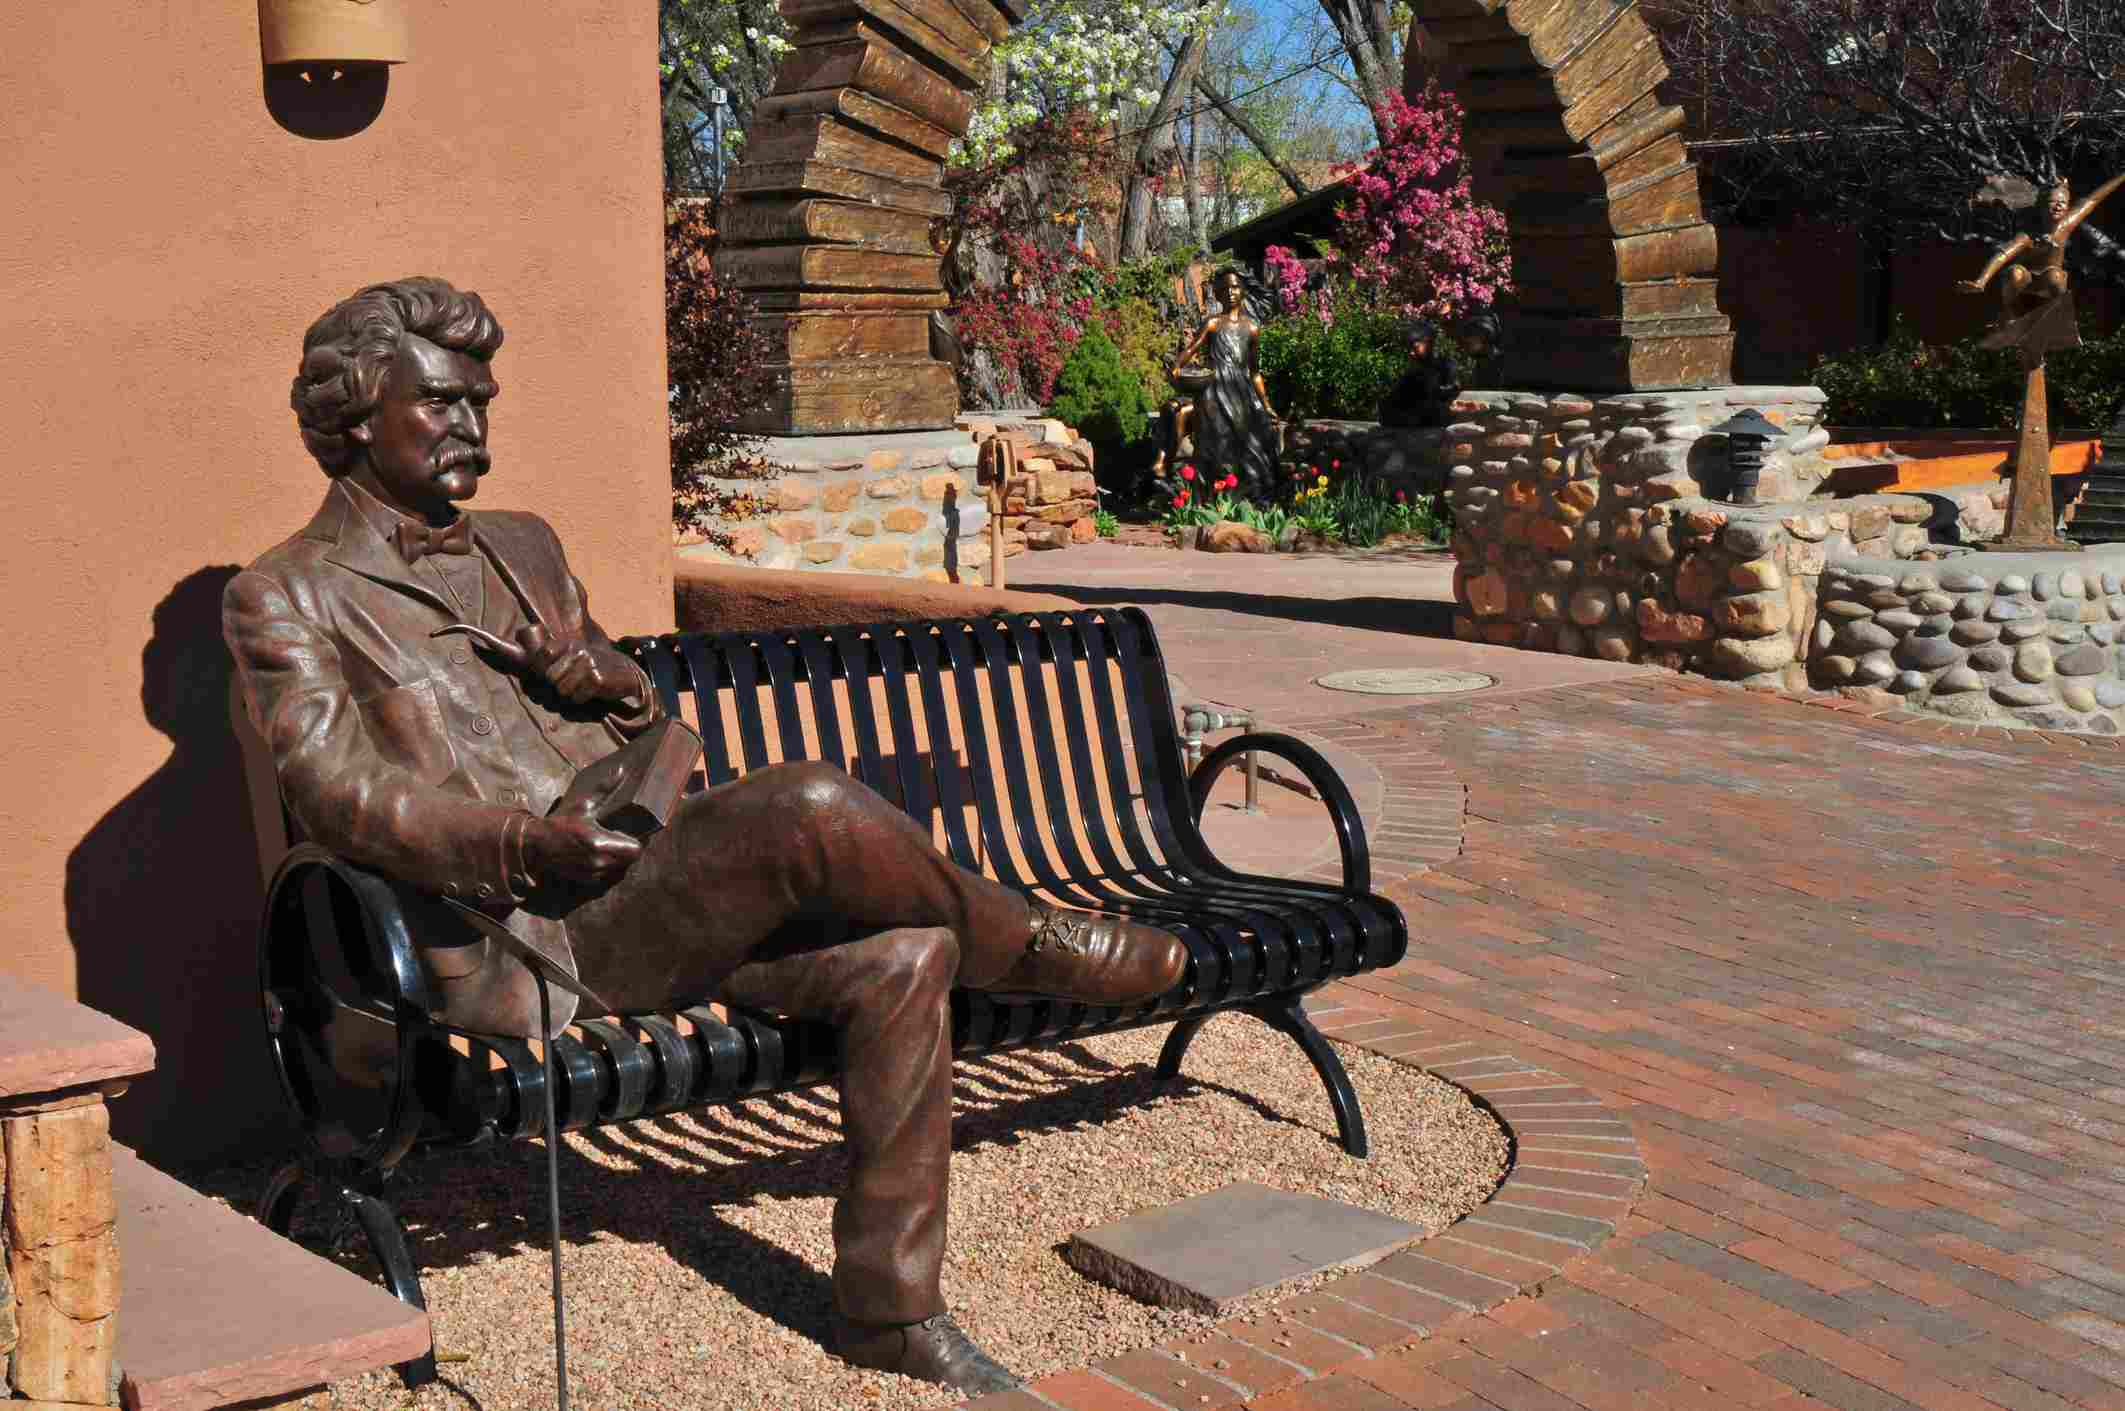 Statue of Mark Twain sitting on a bench